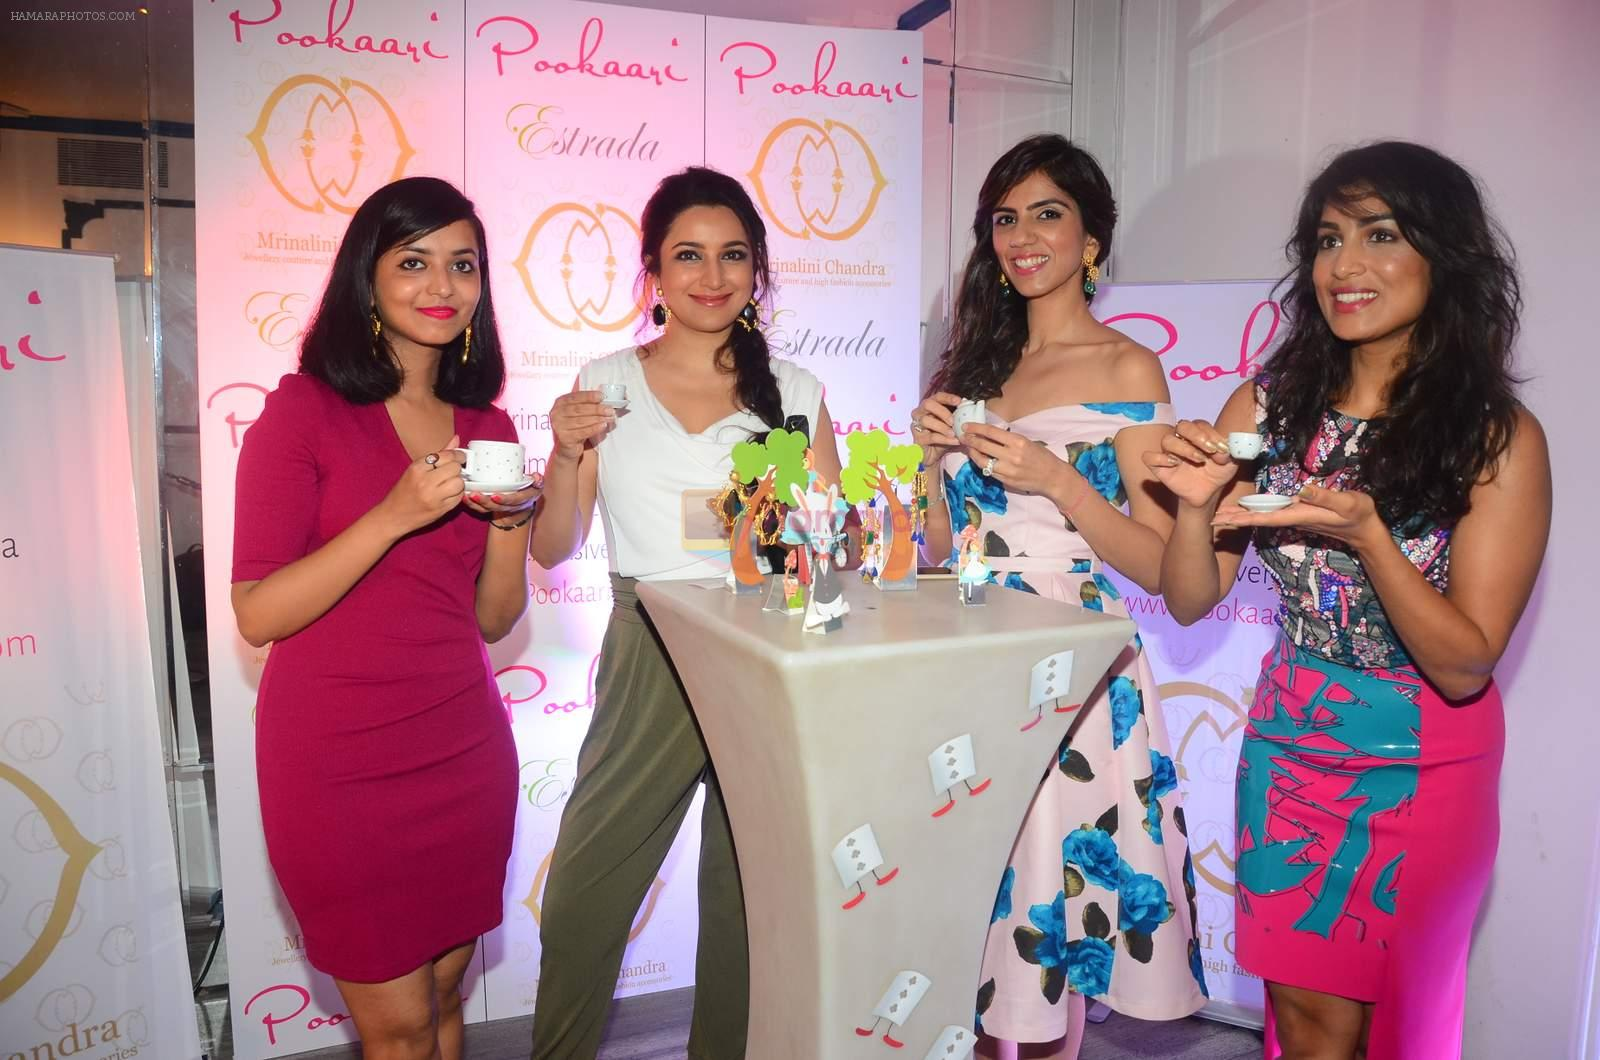 hpse_fullsize__3326176089_Tisca Chopra, Nishka Lulla, Pallavi Sharda at Mrinalini Chandra and Pookar